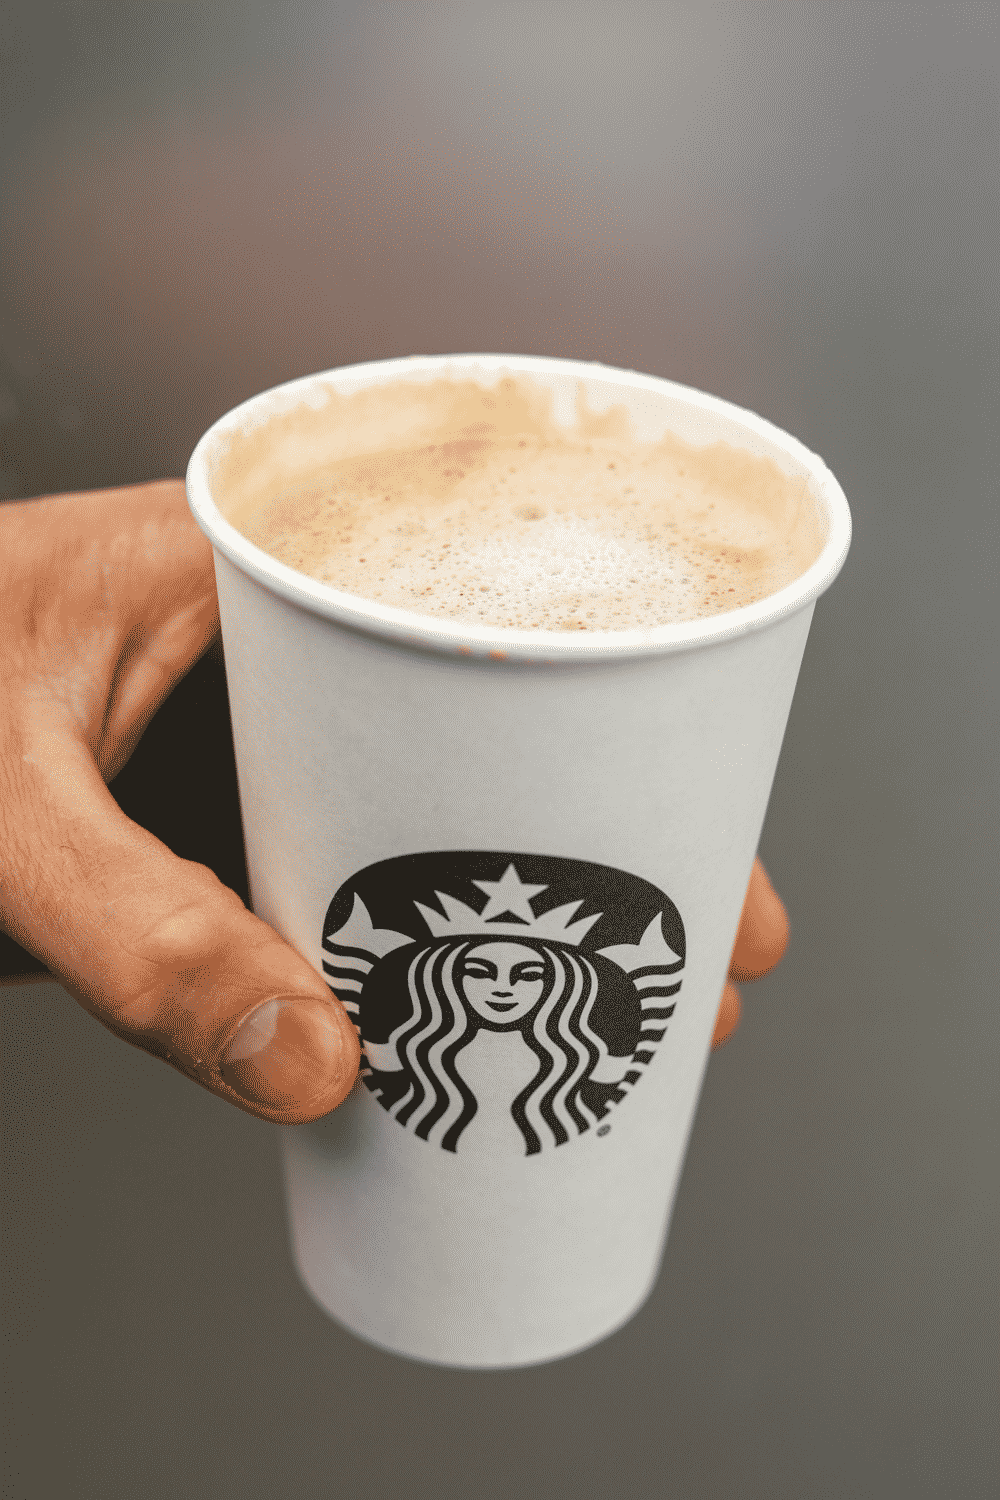 A hand holding a cup of Starbucks keto blonde vanilla latte.